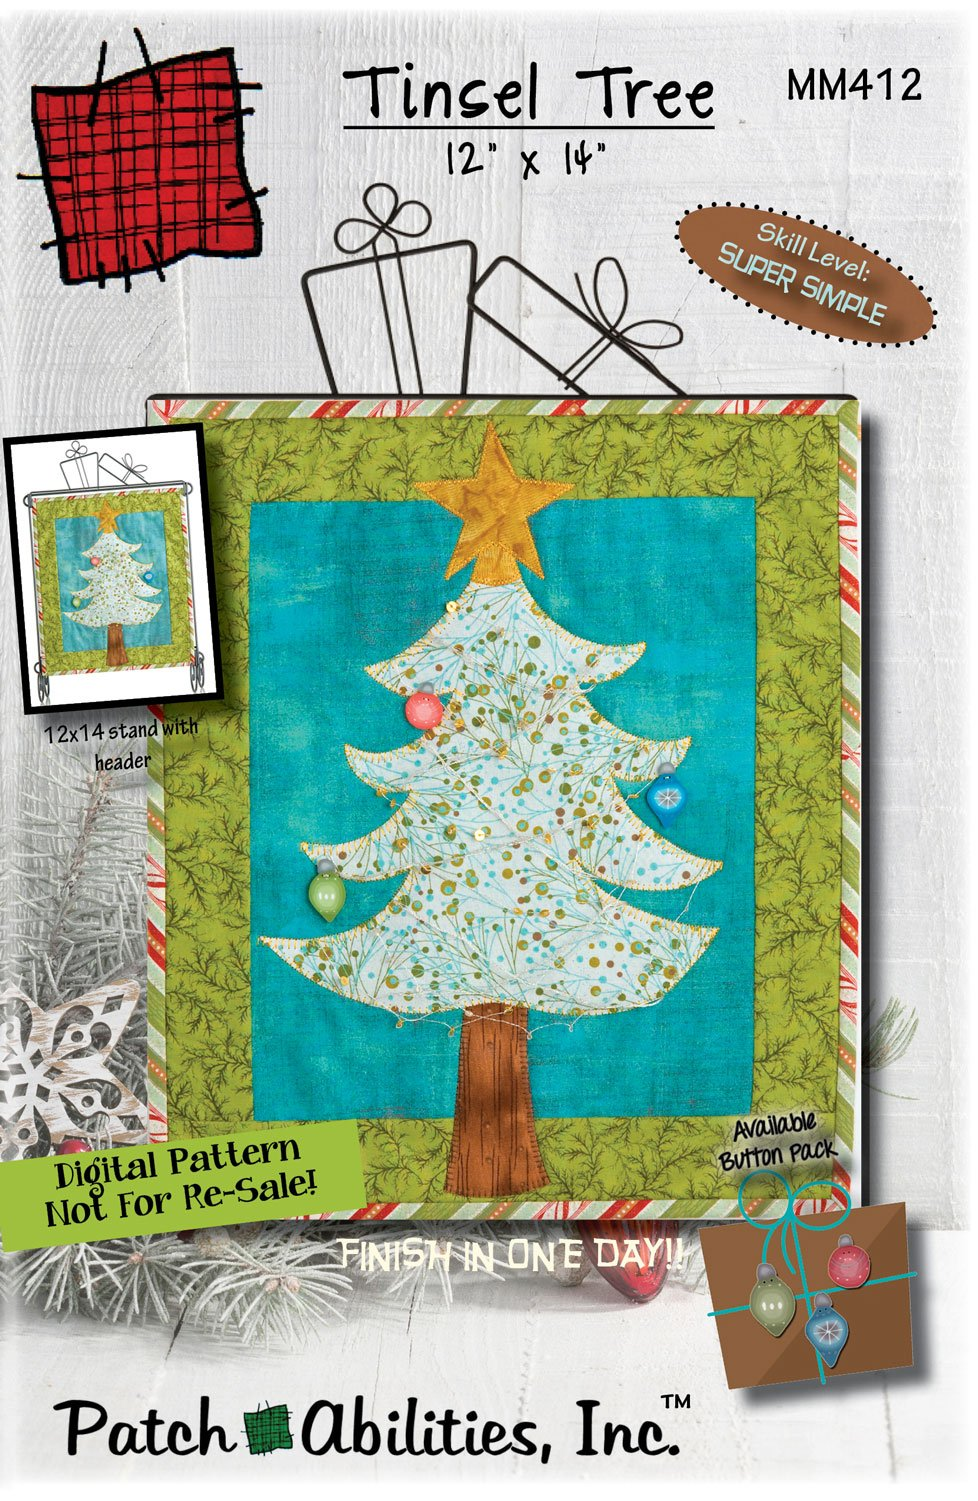 MM412 Tinsel Tree DIGITAL DOWNLOAD PATTERN